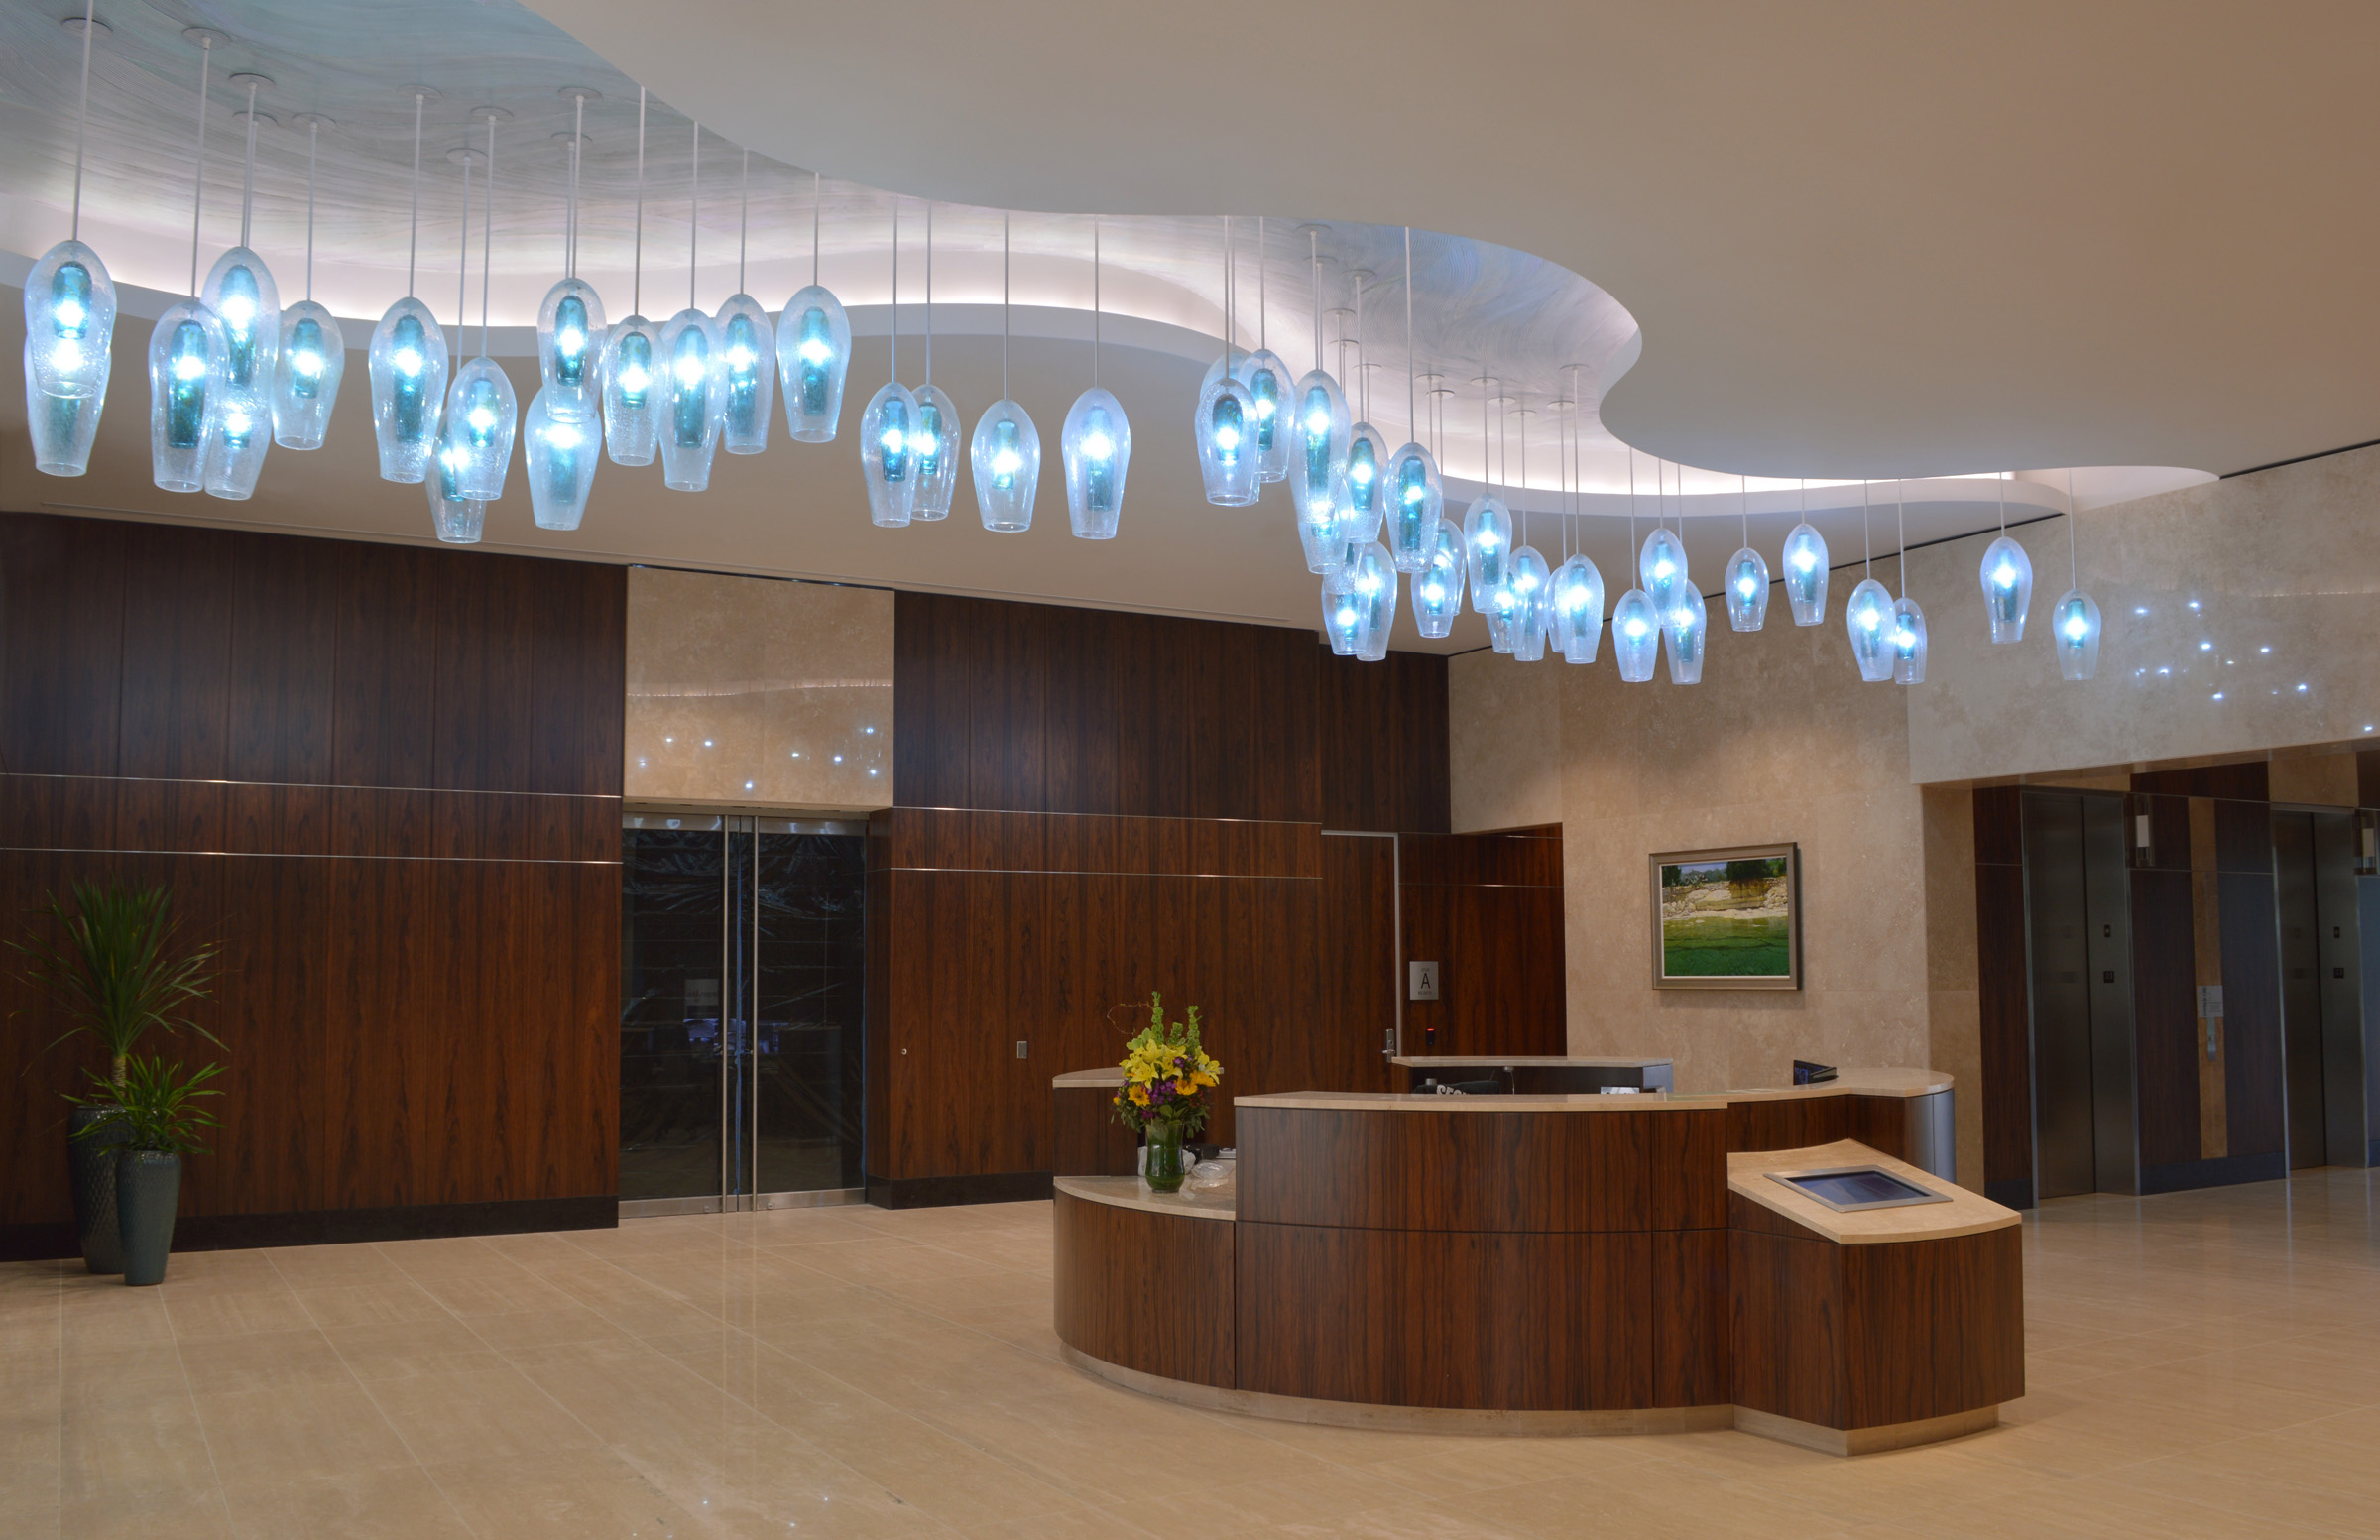 Wimberley Glassworks Briarpark Houston Blown Glass Lighting Installation North Lobby for web1.jpg